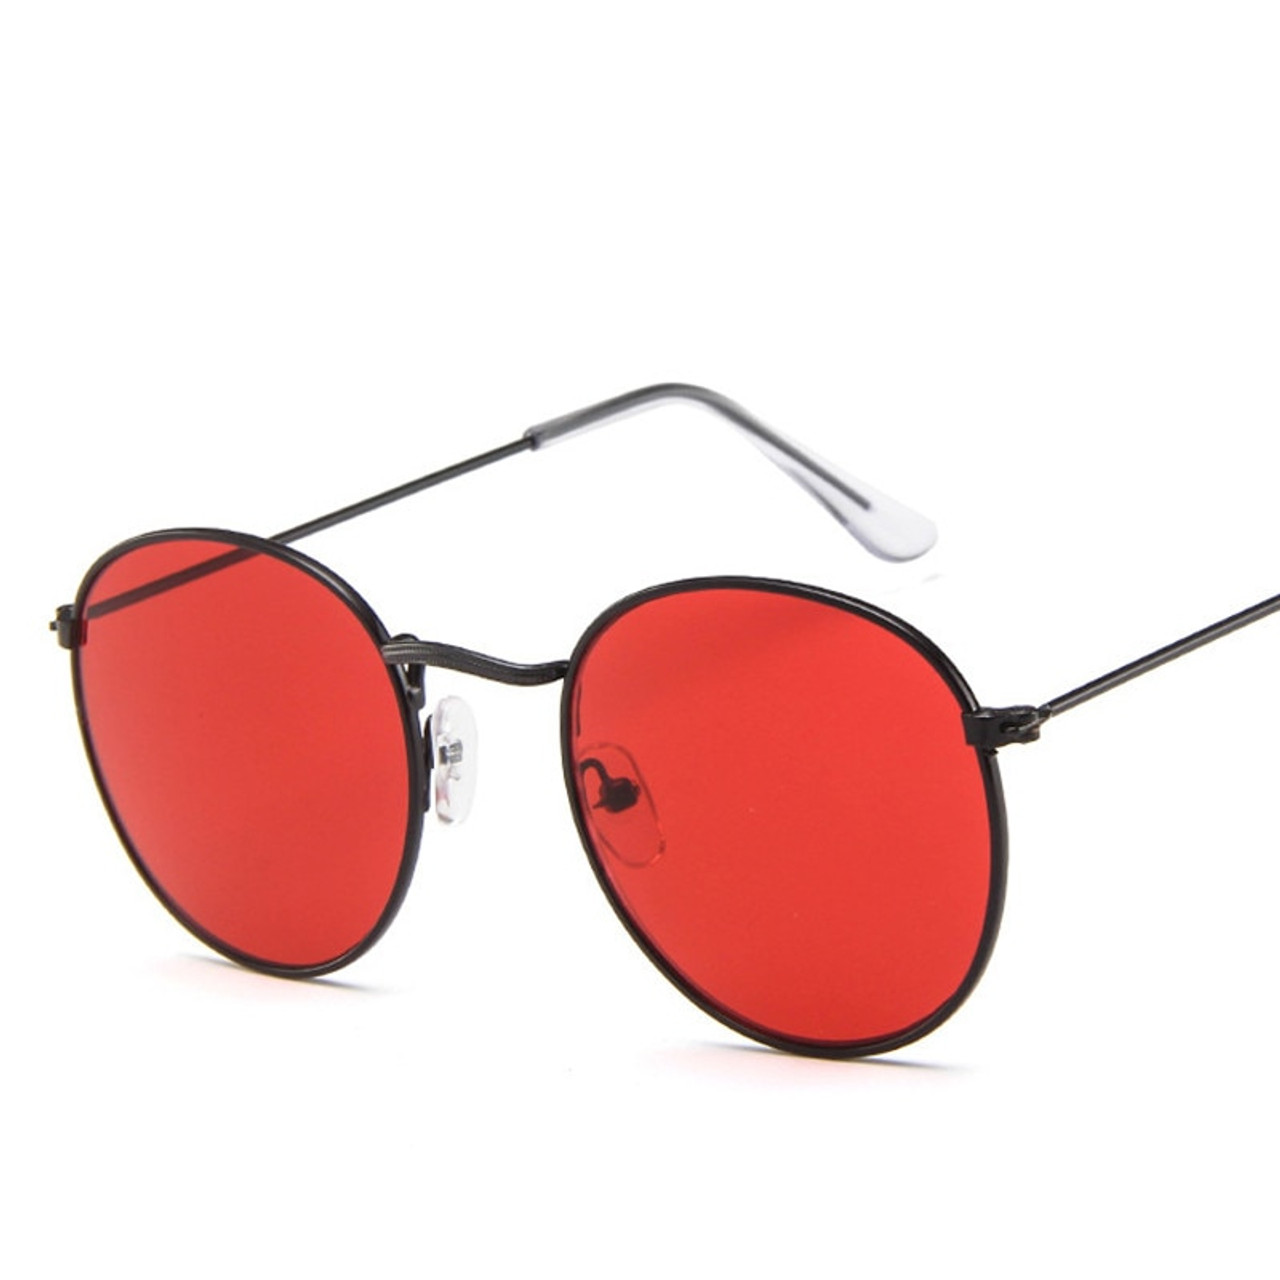 94e3a66380d ... 2019 Vintage Oval Small Metal Frame Sunglasses Men Women Brand Designer  Sun Glasses Female Eyewear Oculos ...